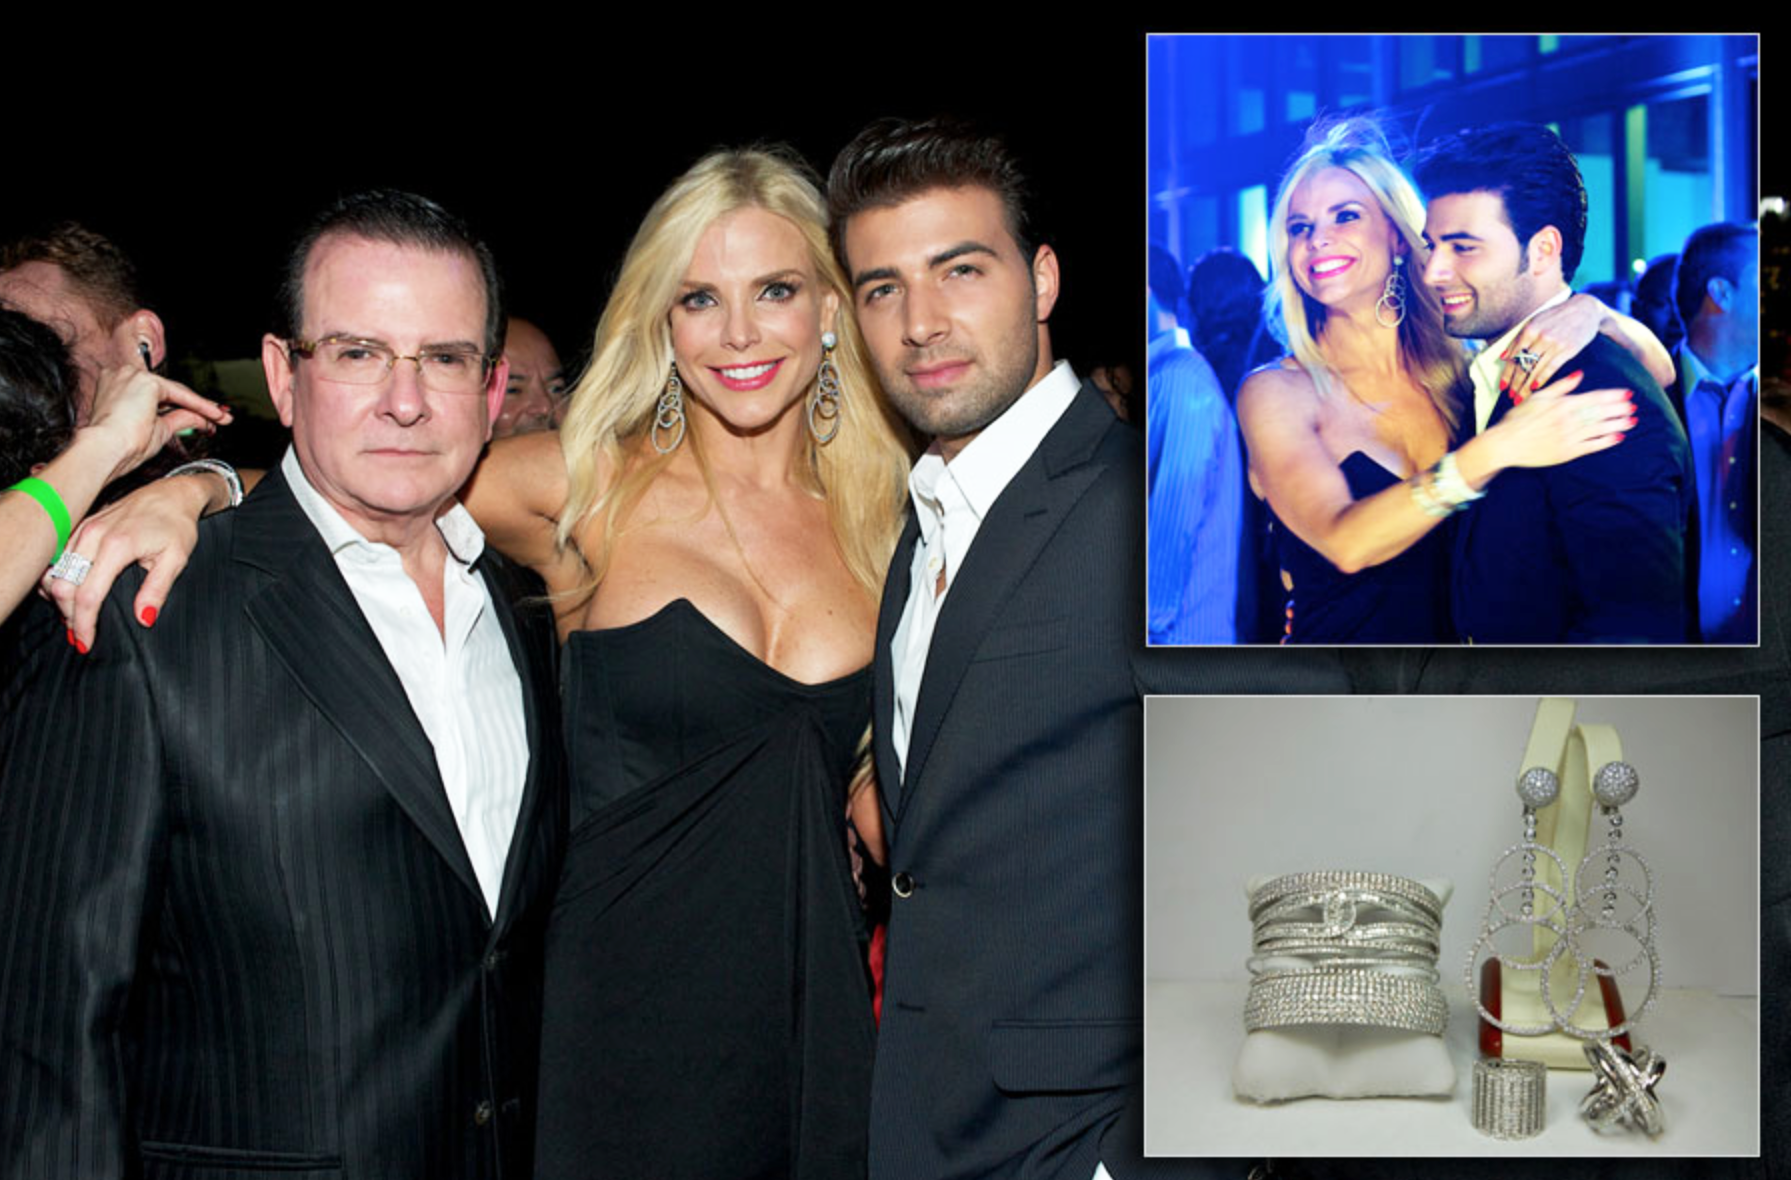 Alexia Echevarria dazzles at the Venue Cover Party in 40 carats of diamond jewelry featuring dramatic 'Circles Drop Earrings' and stacked diamond cuff bracelets.